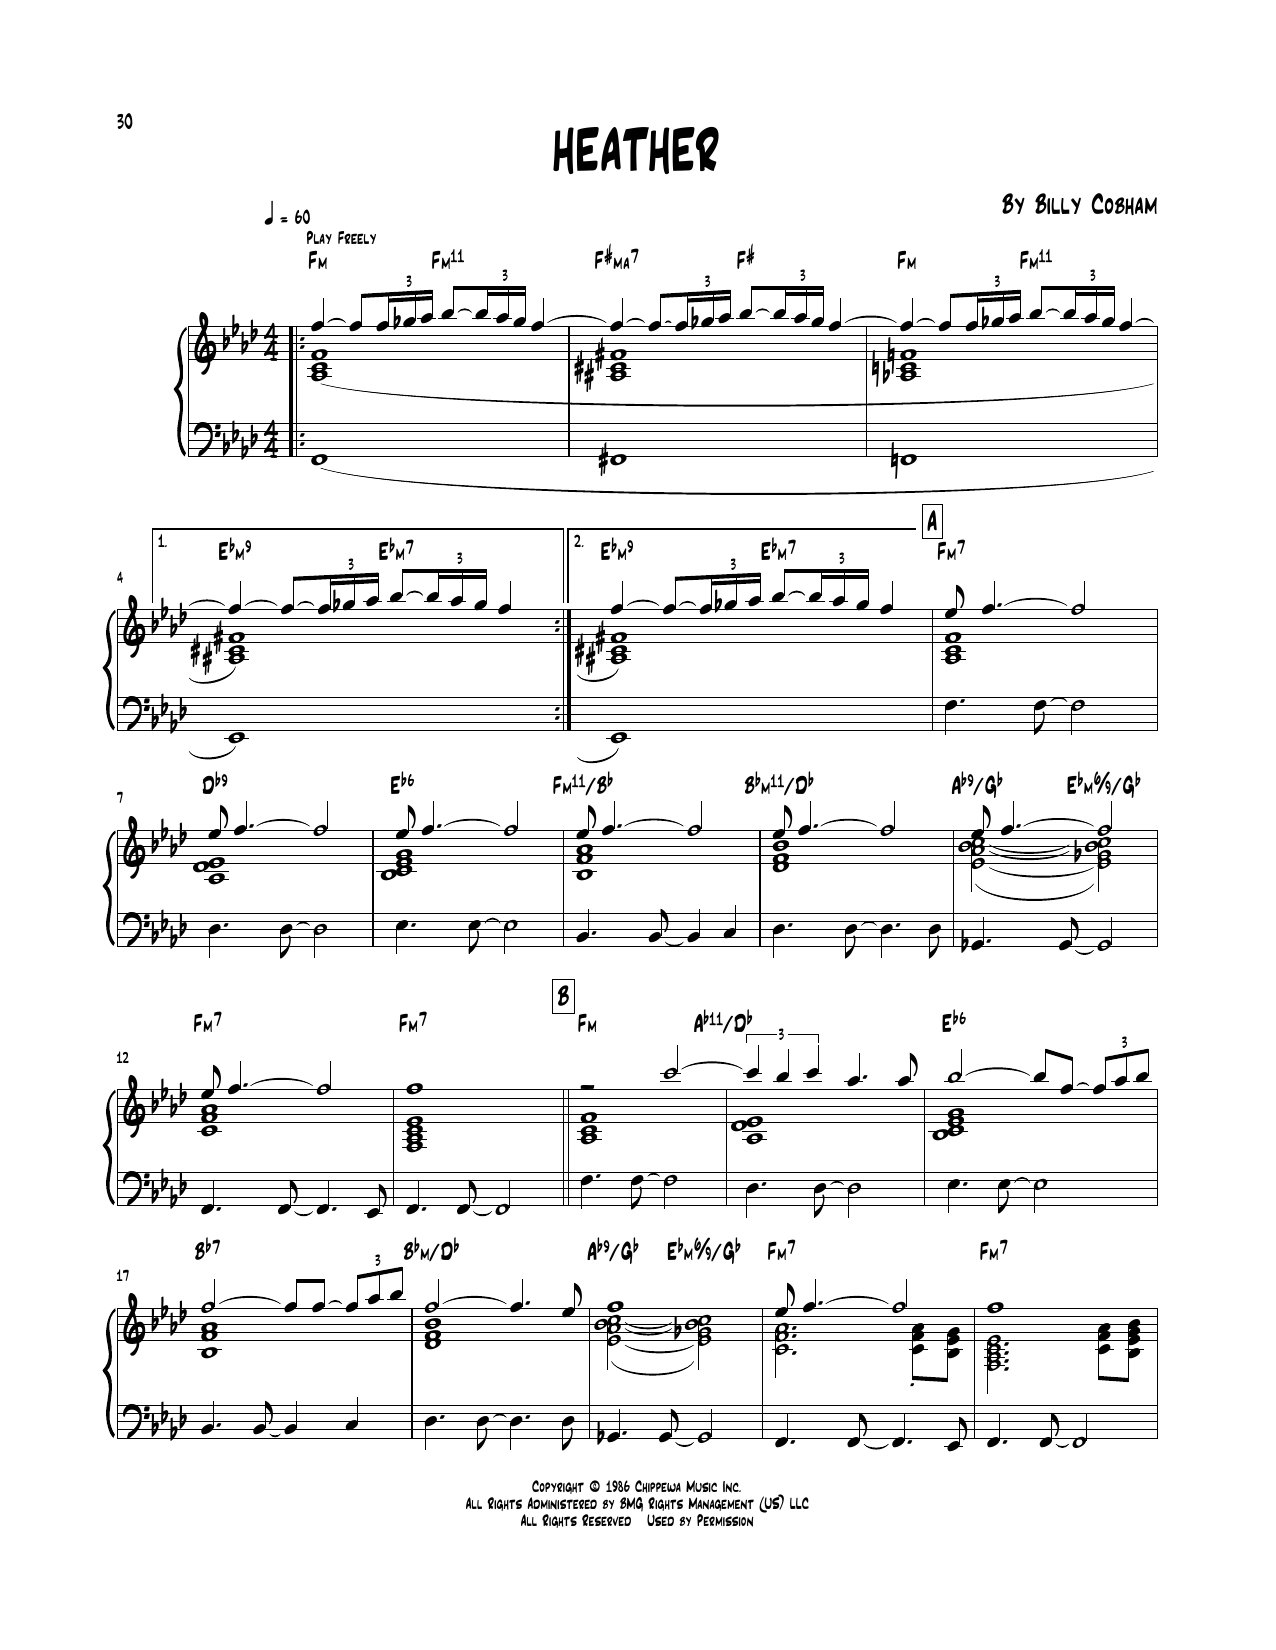 Billy Cobham 'Heather' Sheet Music Notes, Chords | Download Printable Piano  Transcription - SKU: 252015